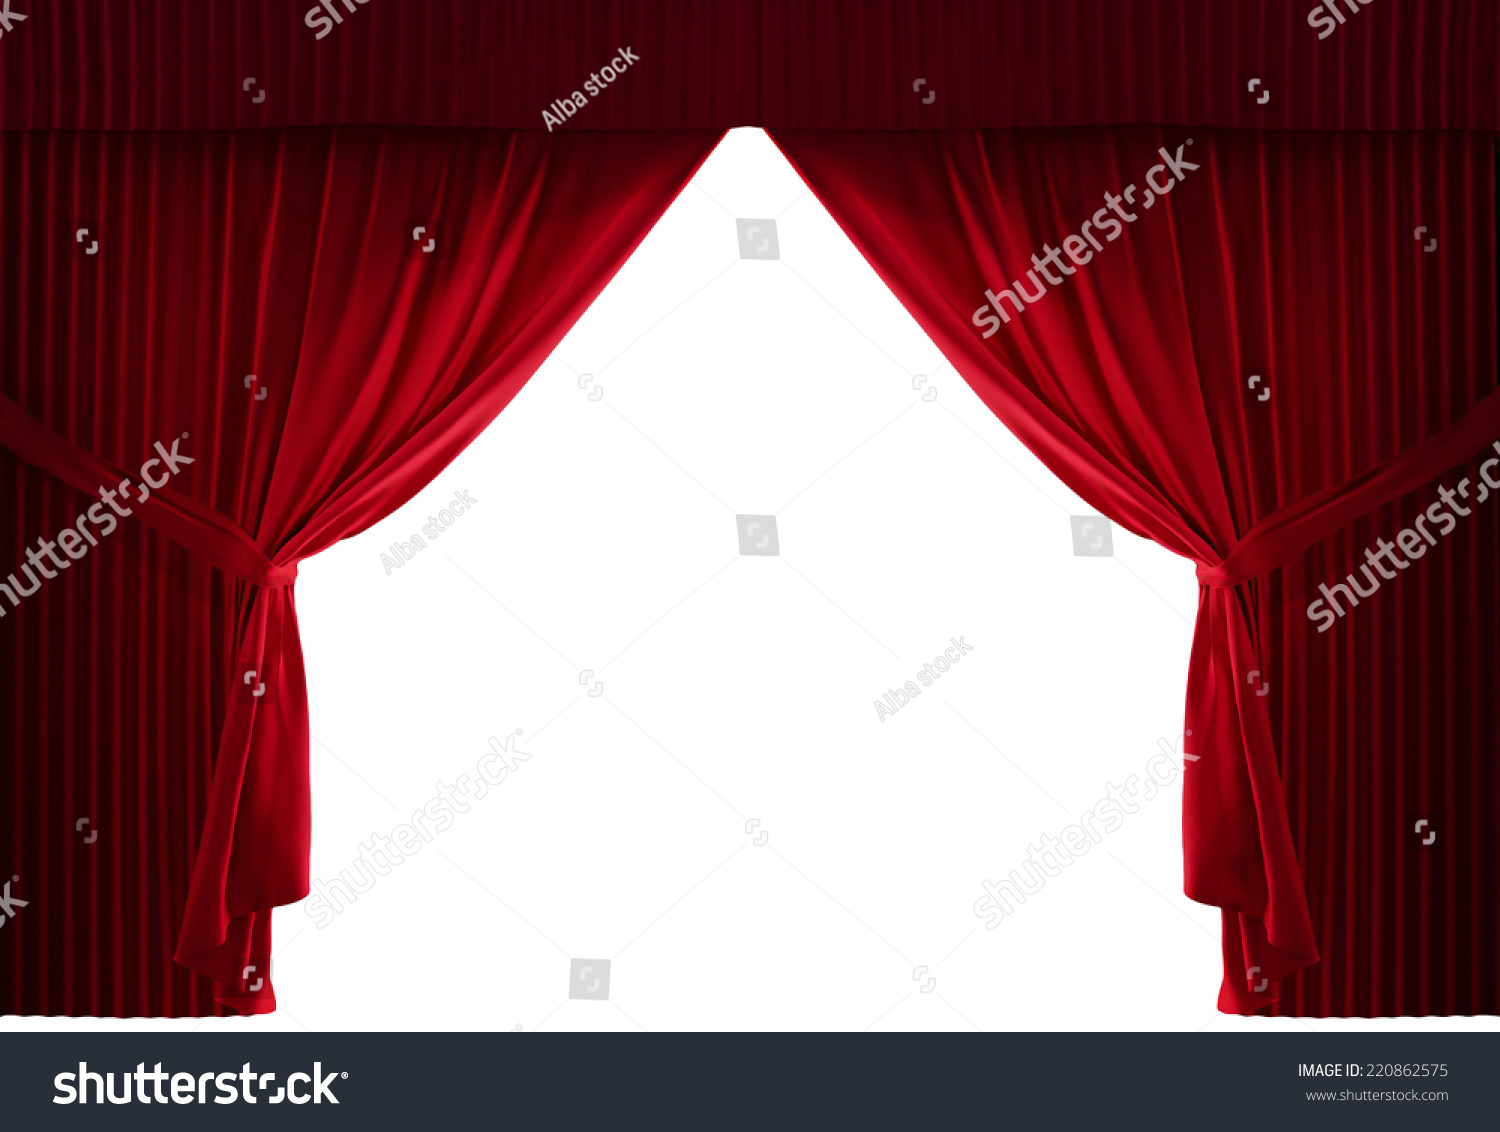 Stage curtain background open stage curtains background red stage - Realistic Stage Curtains With A Black Background